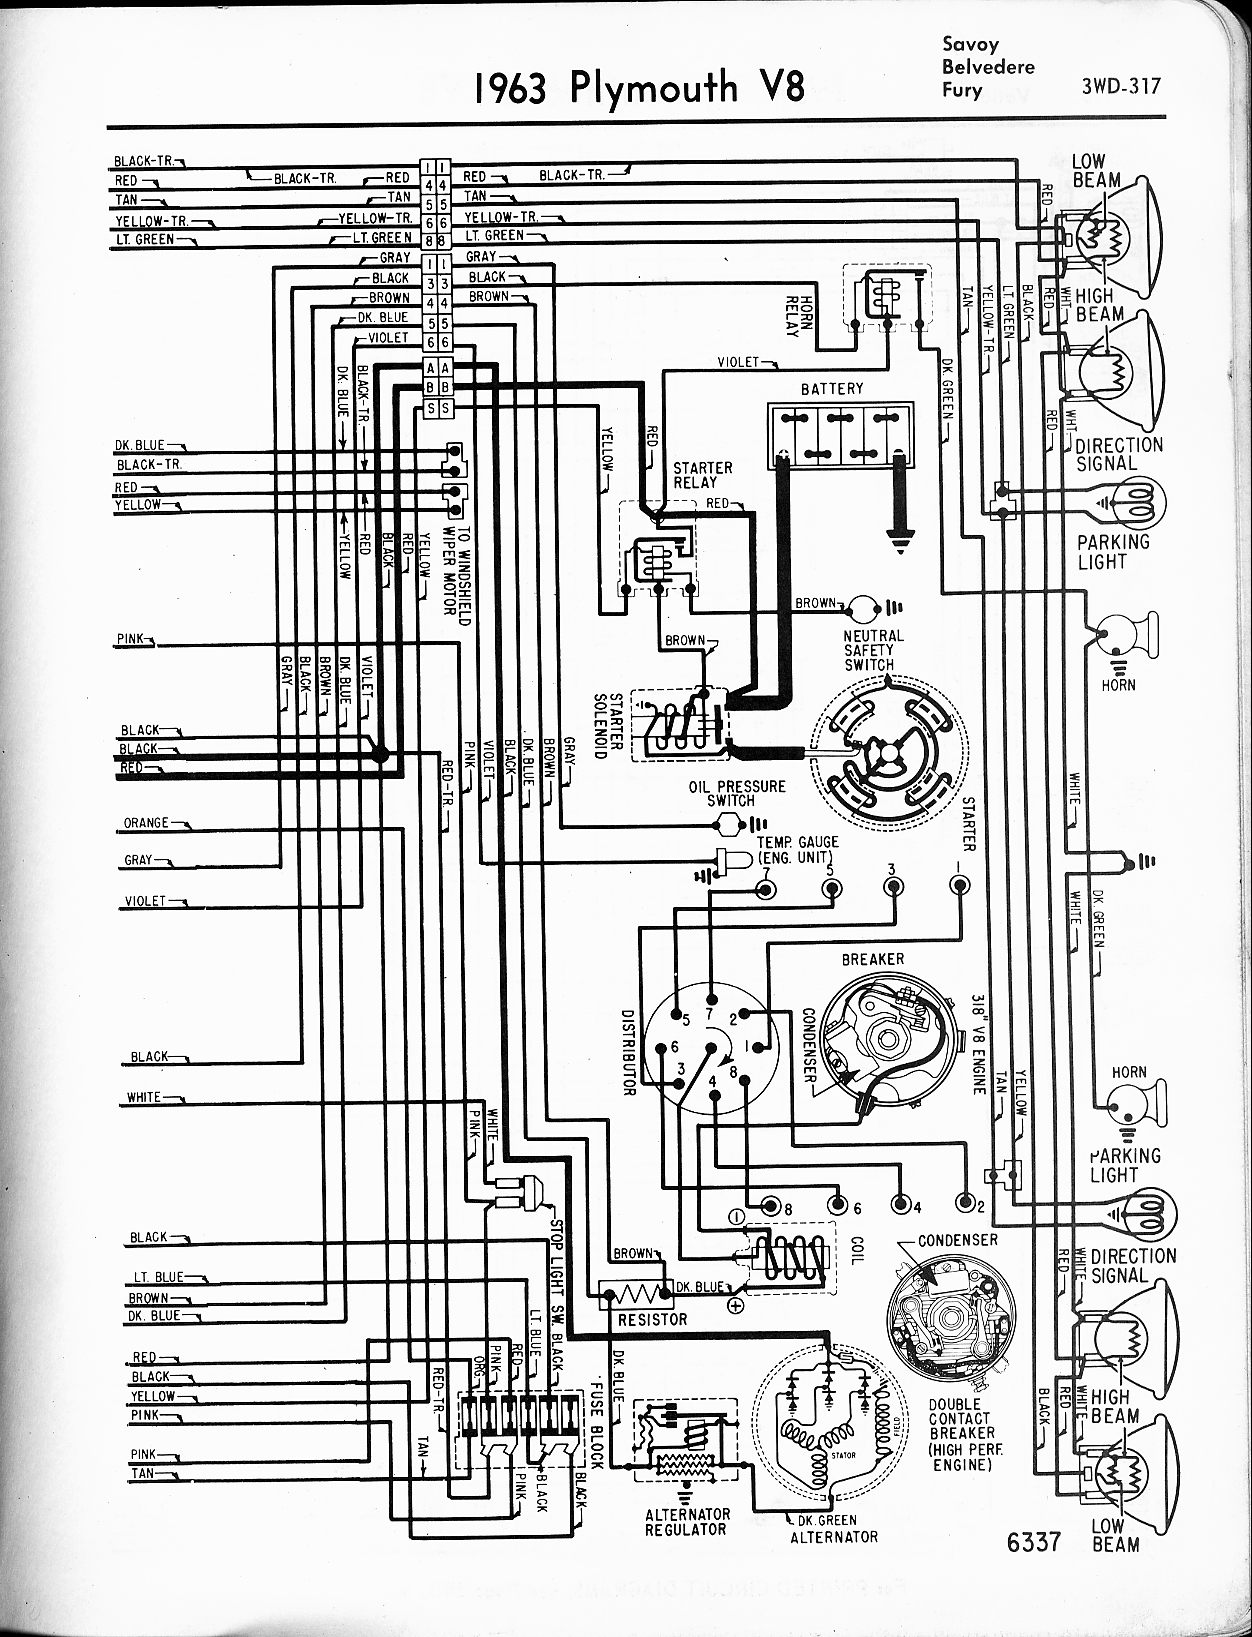 1953 Plymouth Wiring Diagram | Wiring Diagram Database